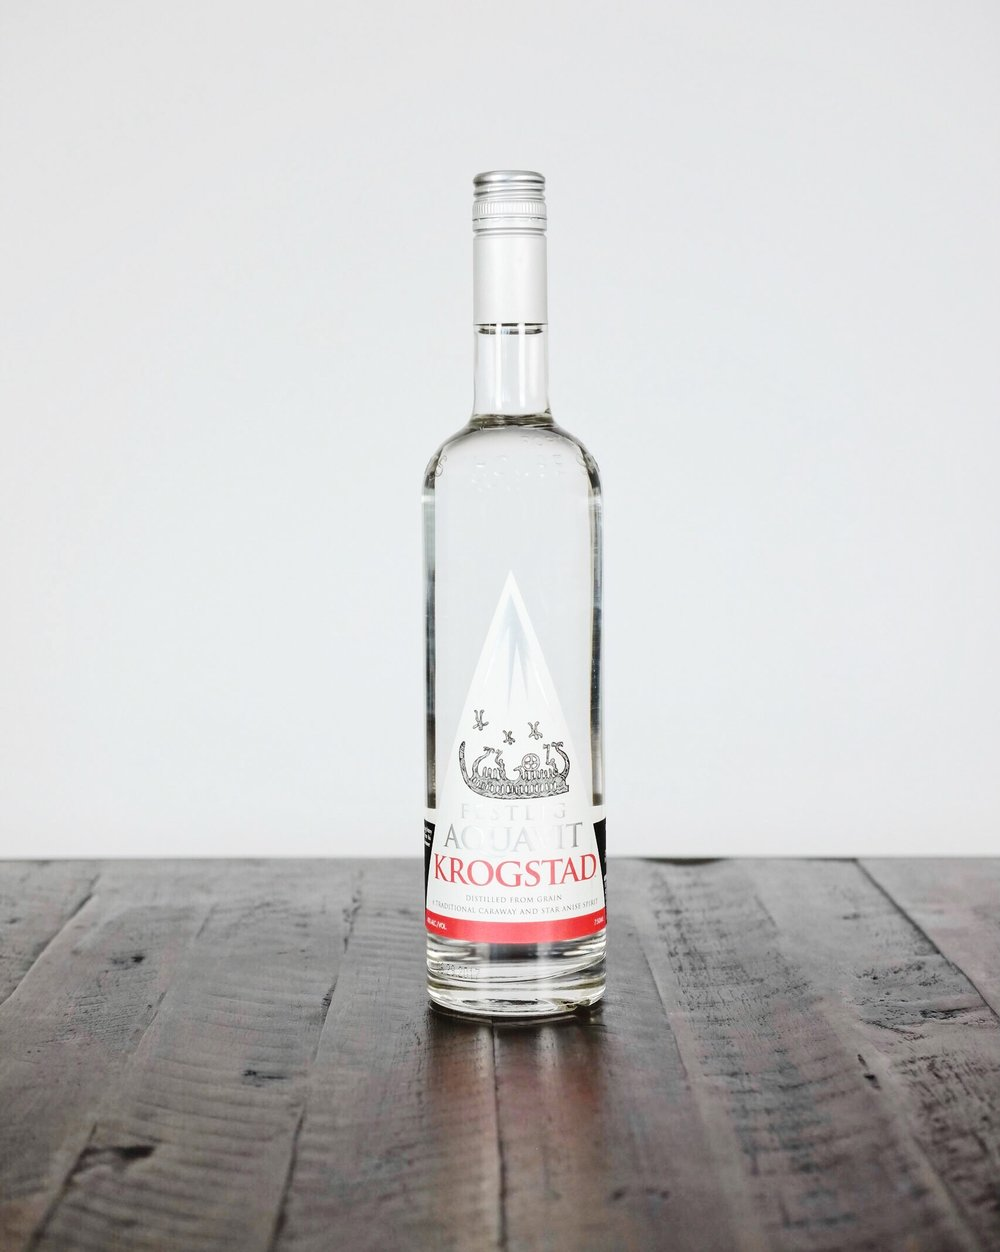 Krogstad Aquavit - AGE: unagedCOST: $25-$30ABV: 40%DEFINING FLAVORS: Star anise & caraway